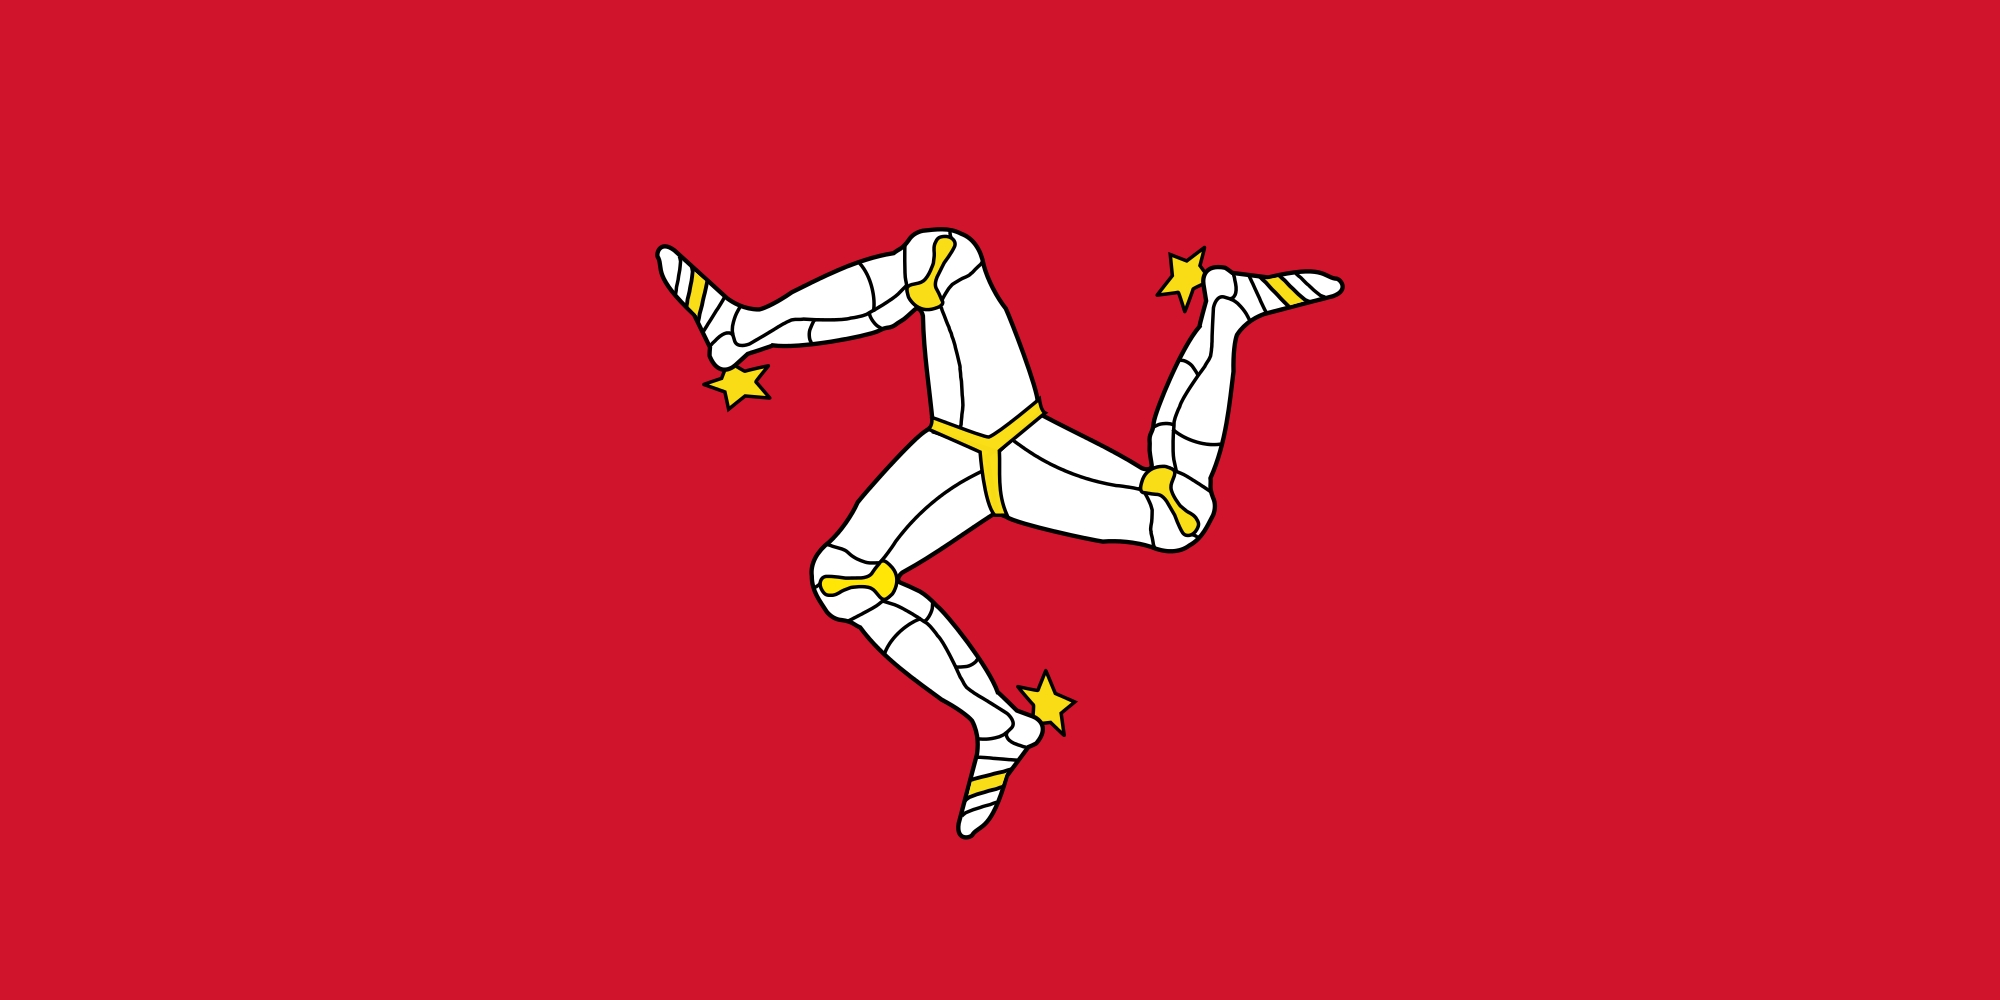 National TV channel for the Isle of Man